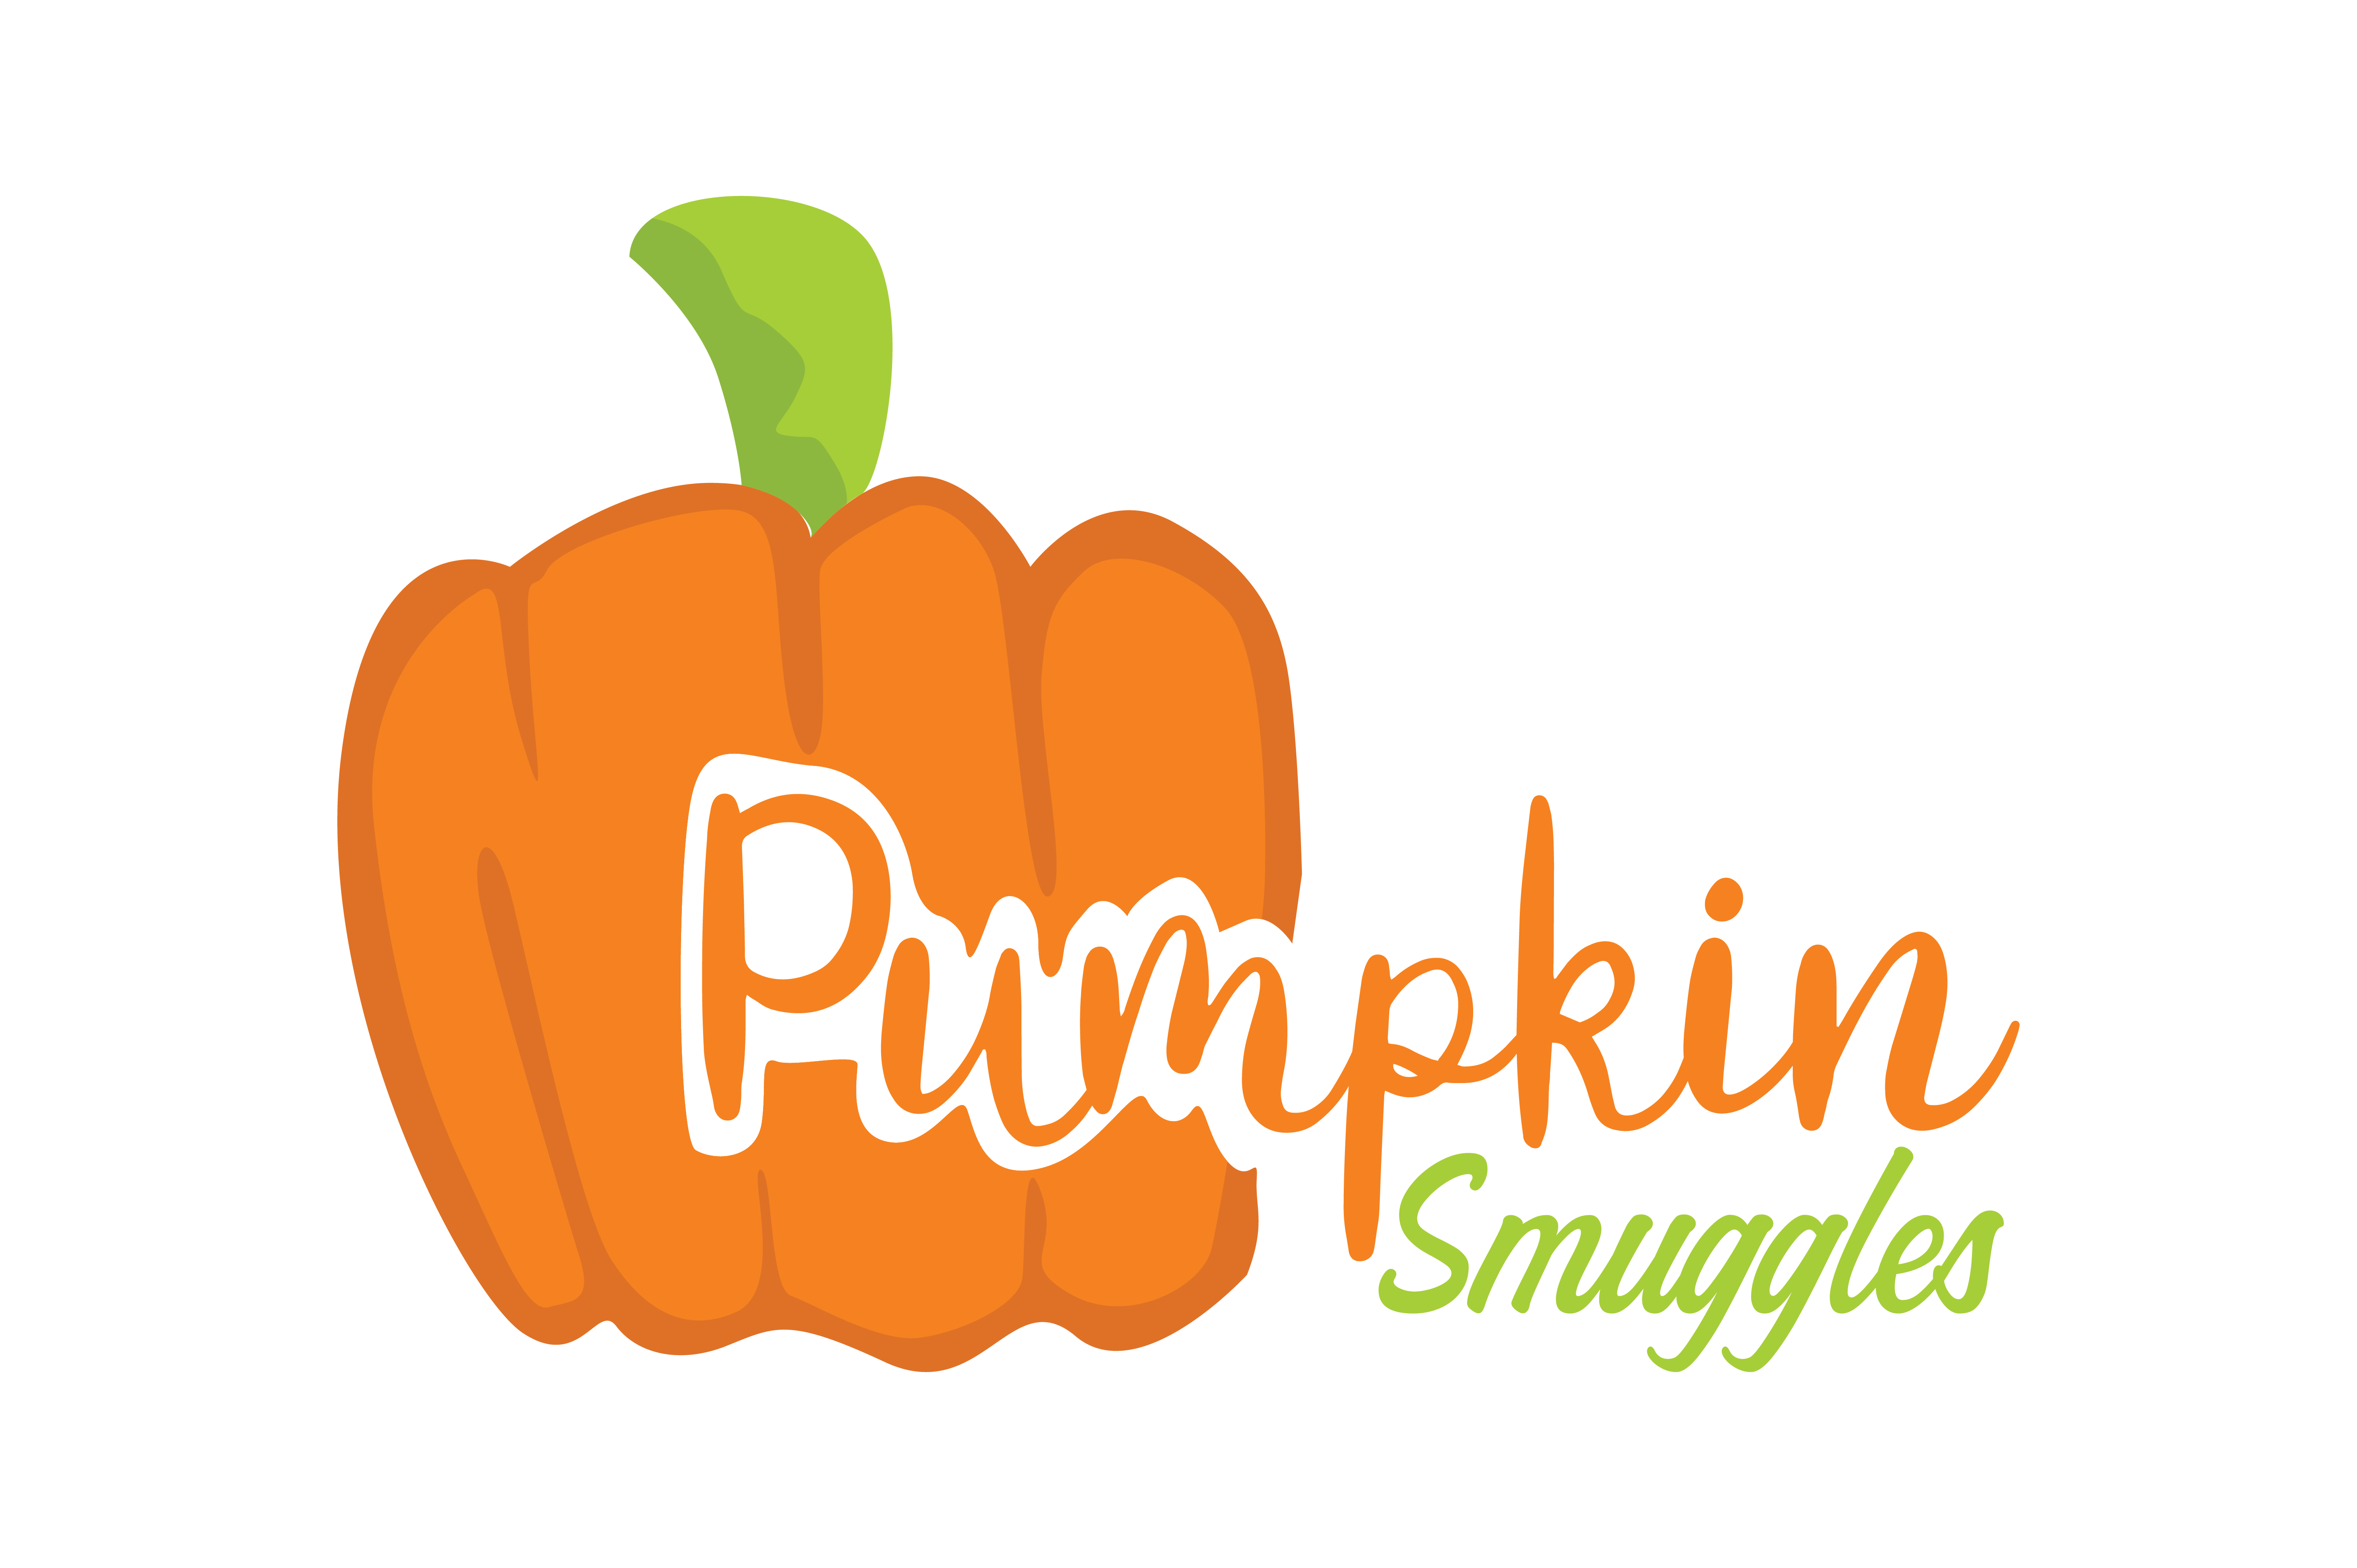 Download Free Pumpkin Smuggles Graphic By Thelucky Creative Fabrica for Cricut Explore, Silhouette and other cutting machines.